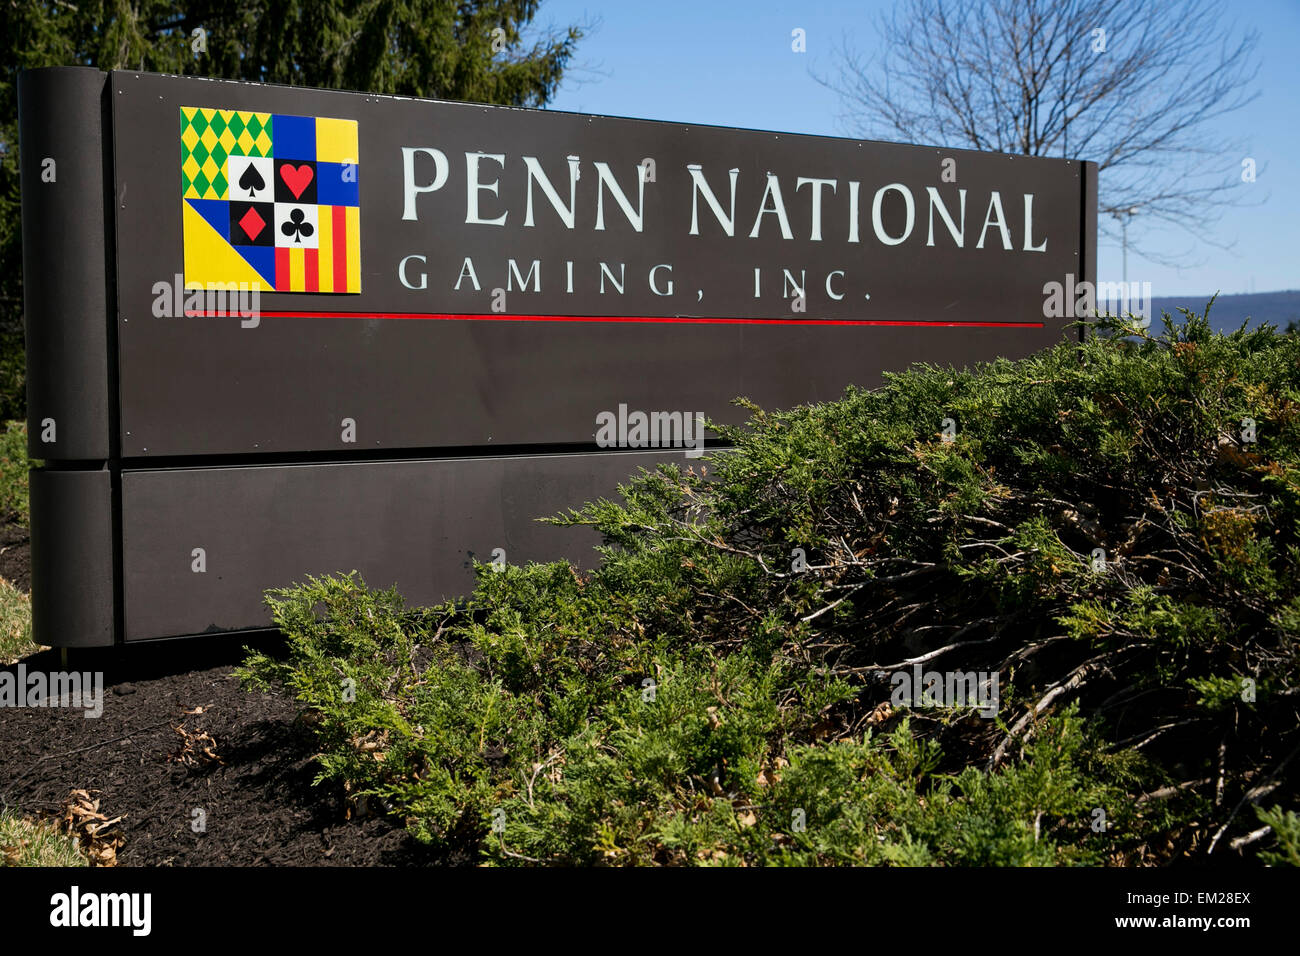 Un logotipo firmar fuera de la sede de Penn National Gaming, Inc., en Wyomissing, Pennsylvania. Imagen De Stock